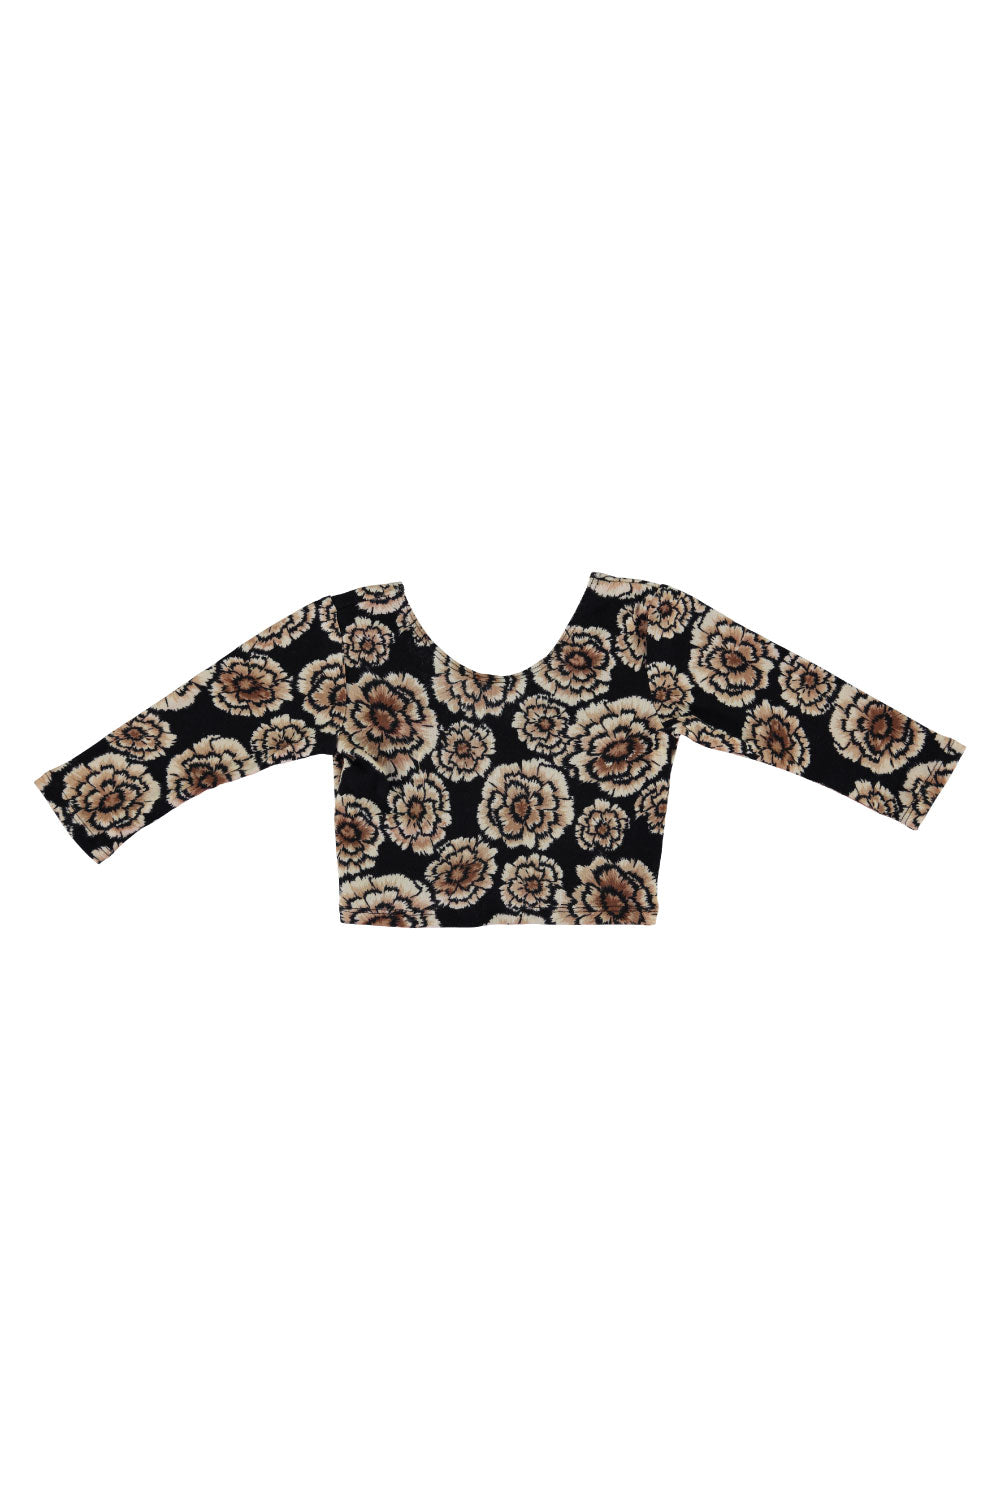 3/4 Sleeve Crop Top - Black Floral